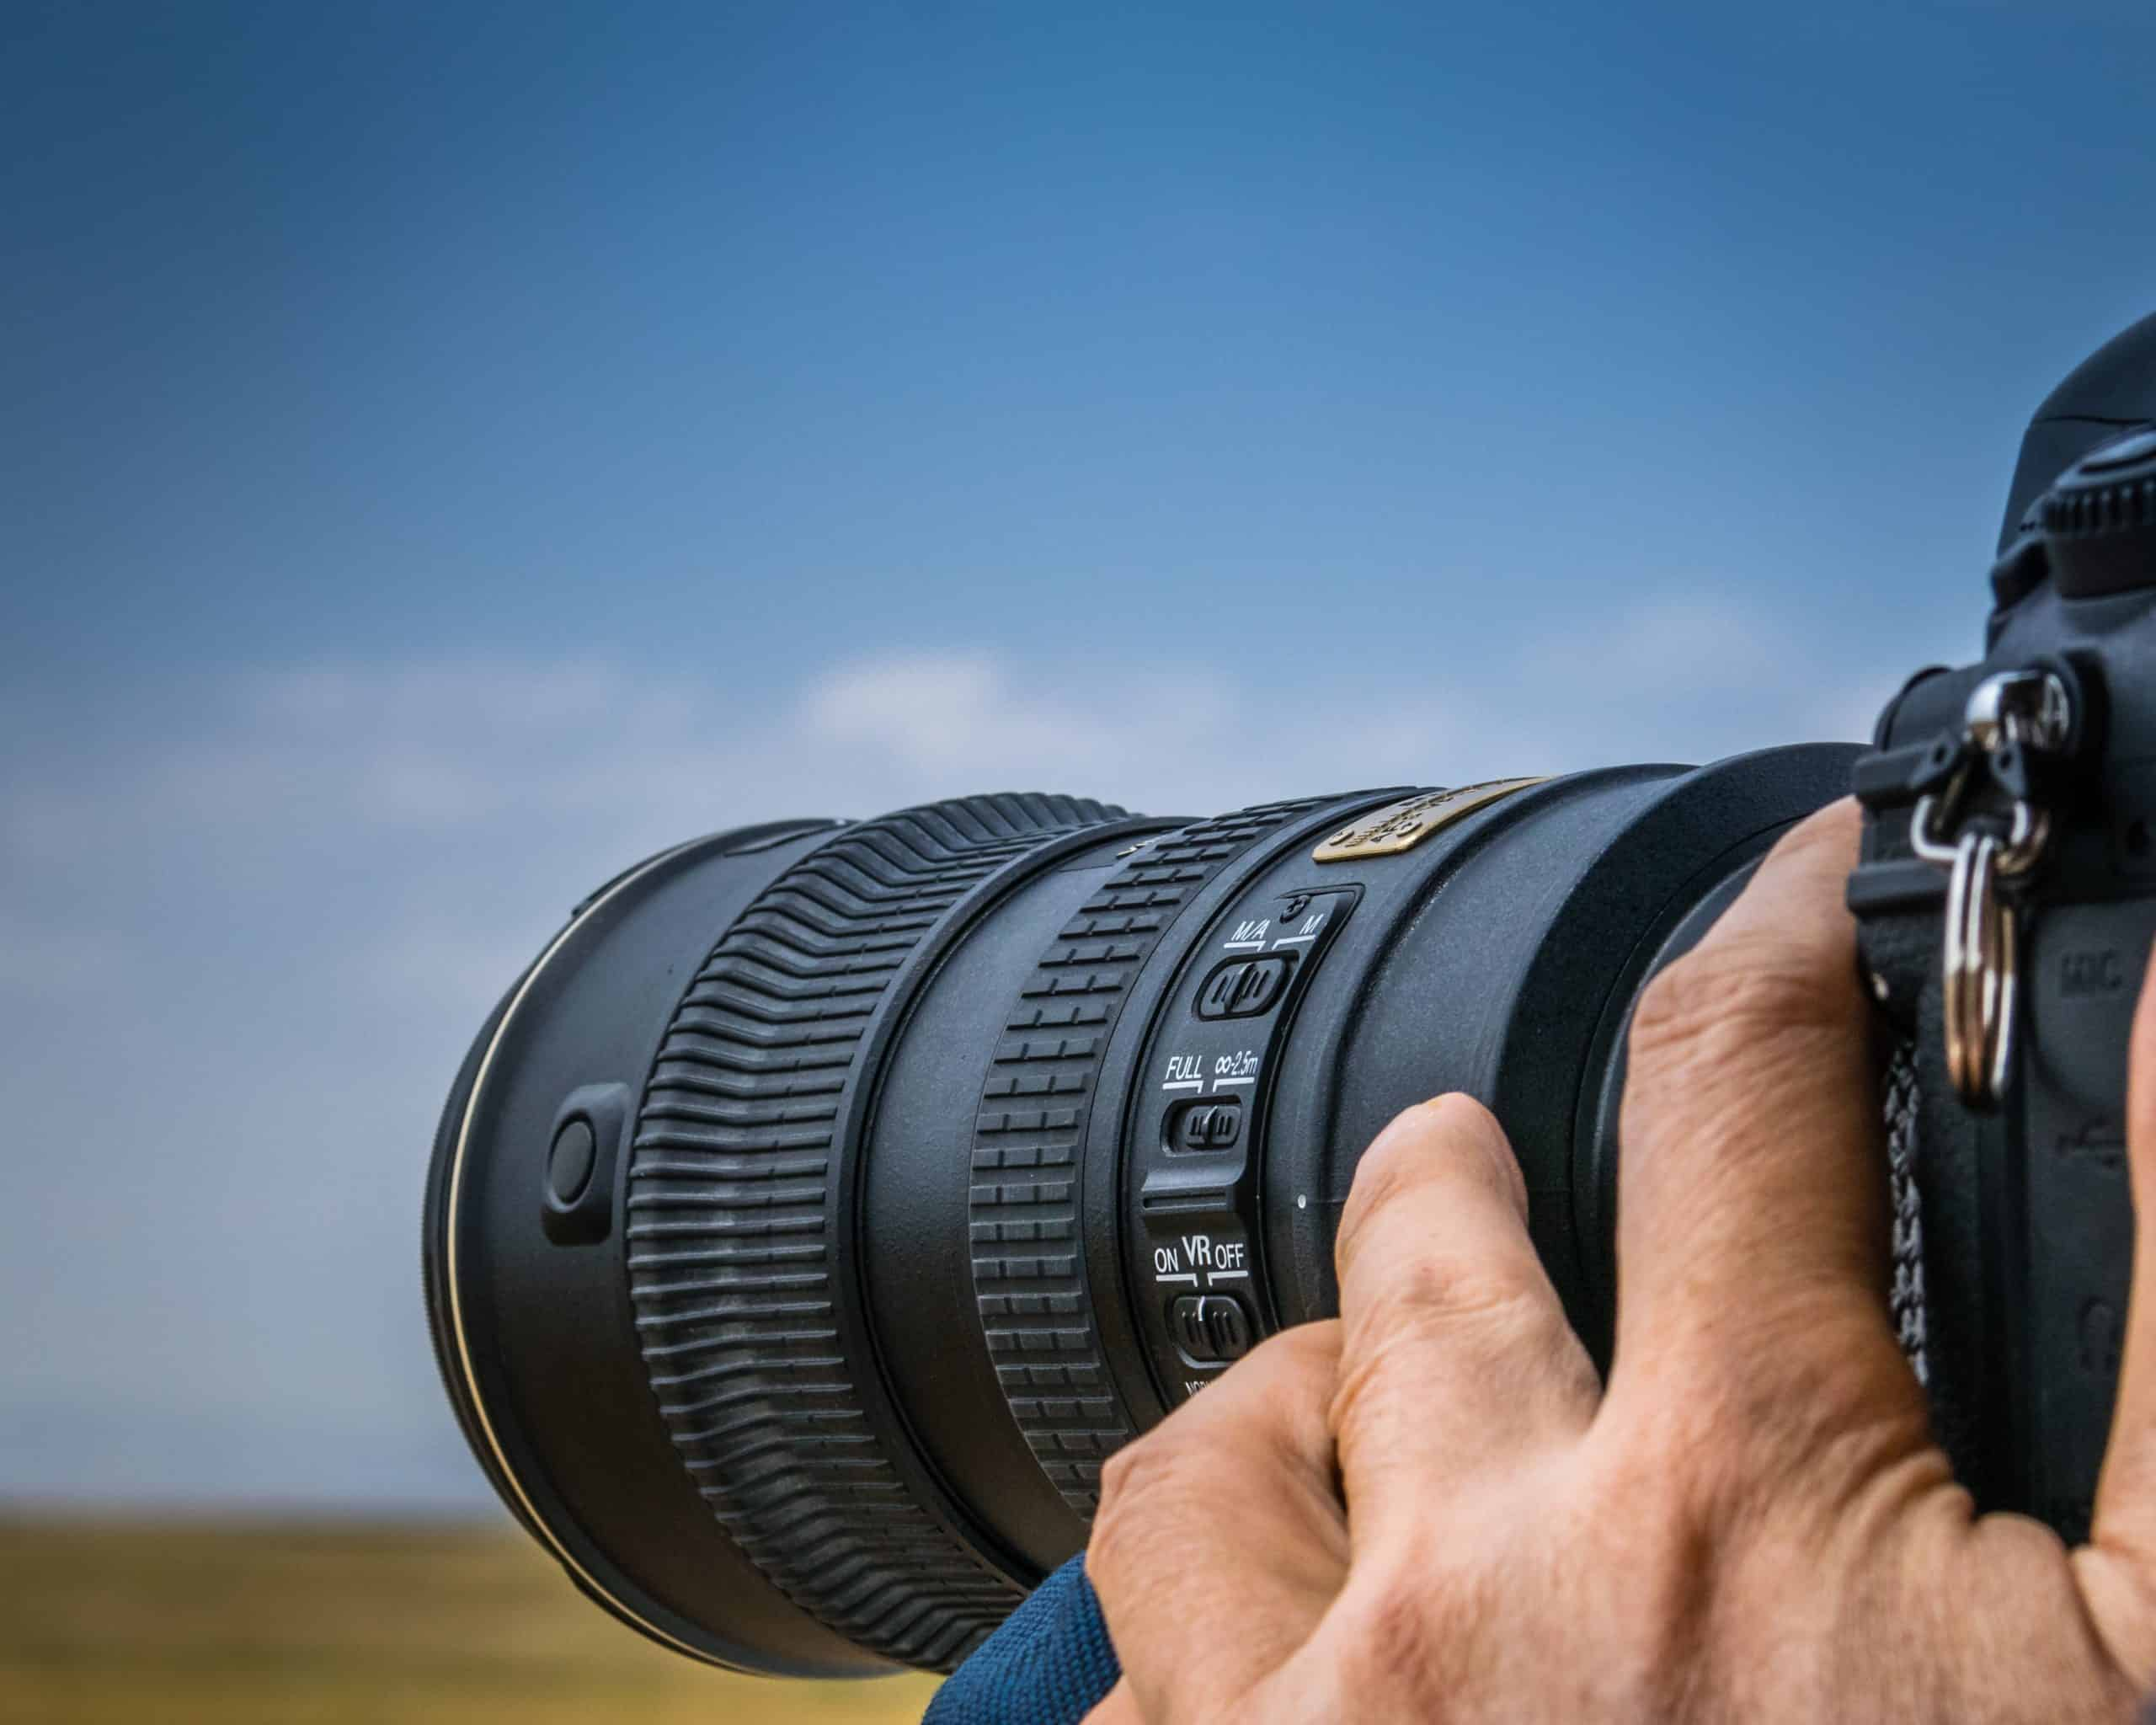 Accessories That You Would Need For Wildlife Photography